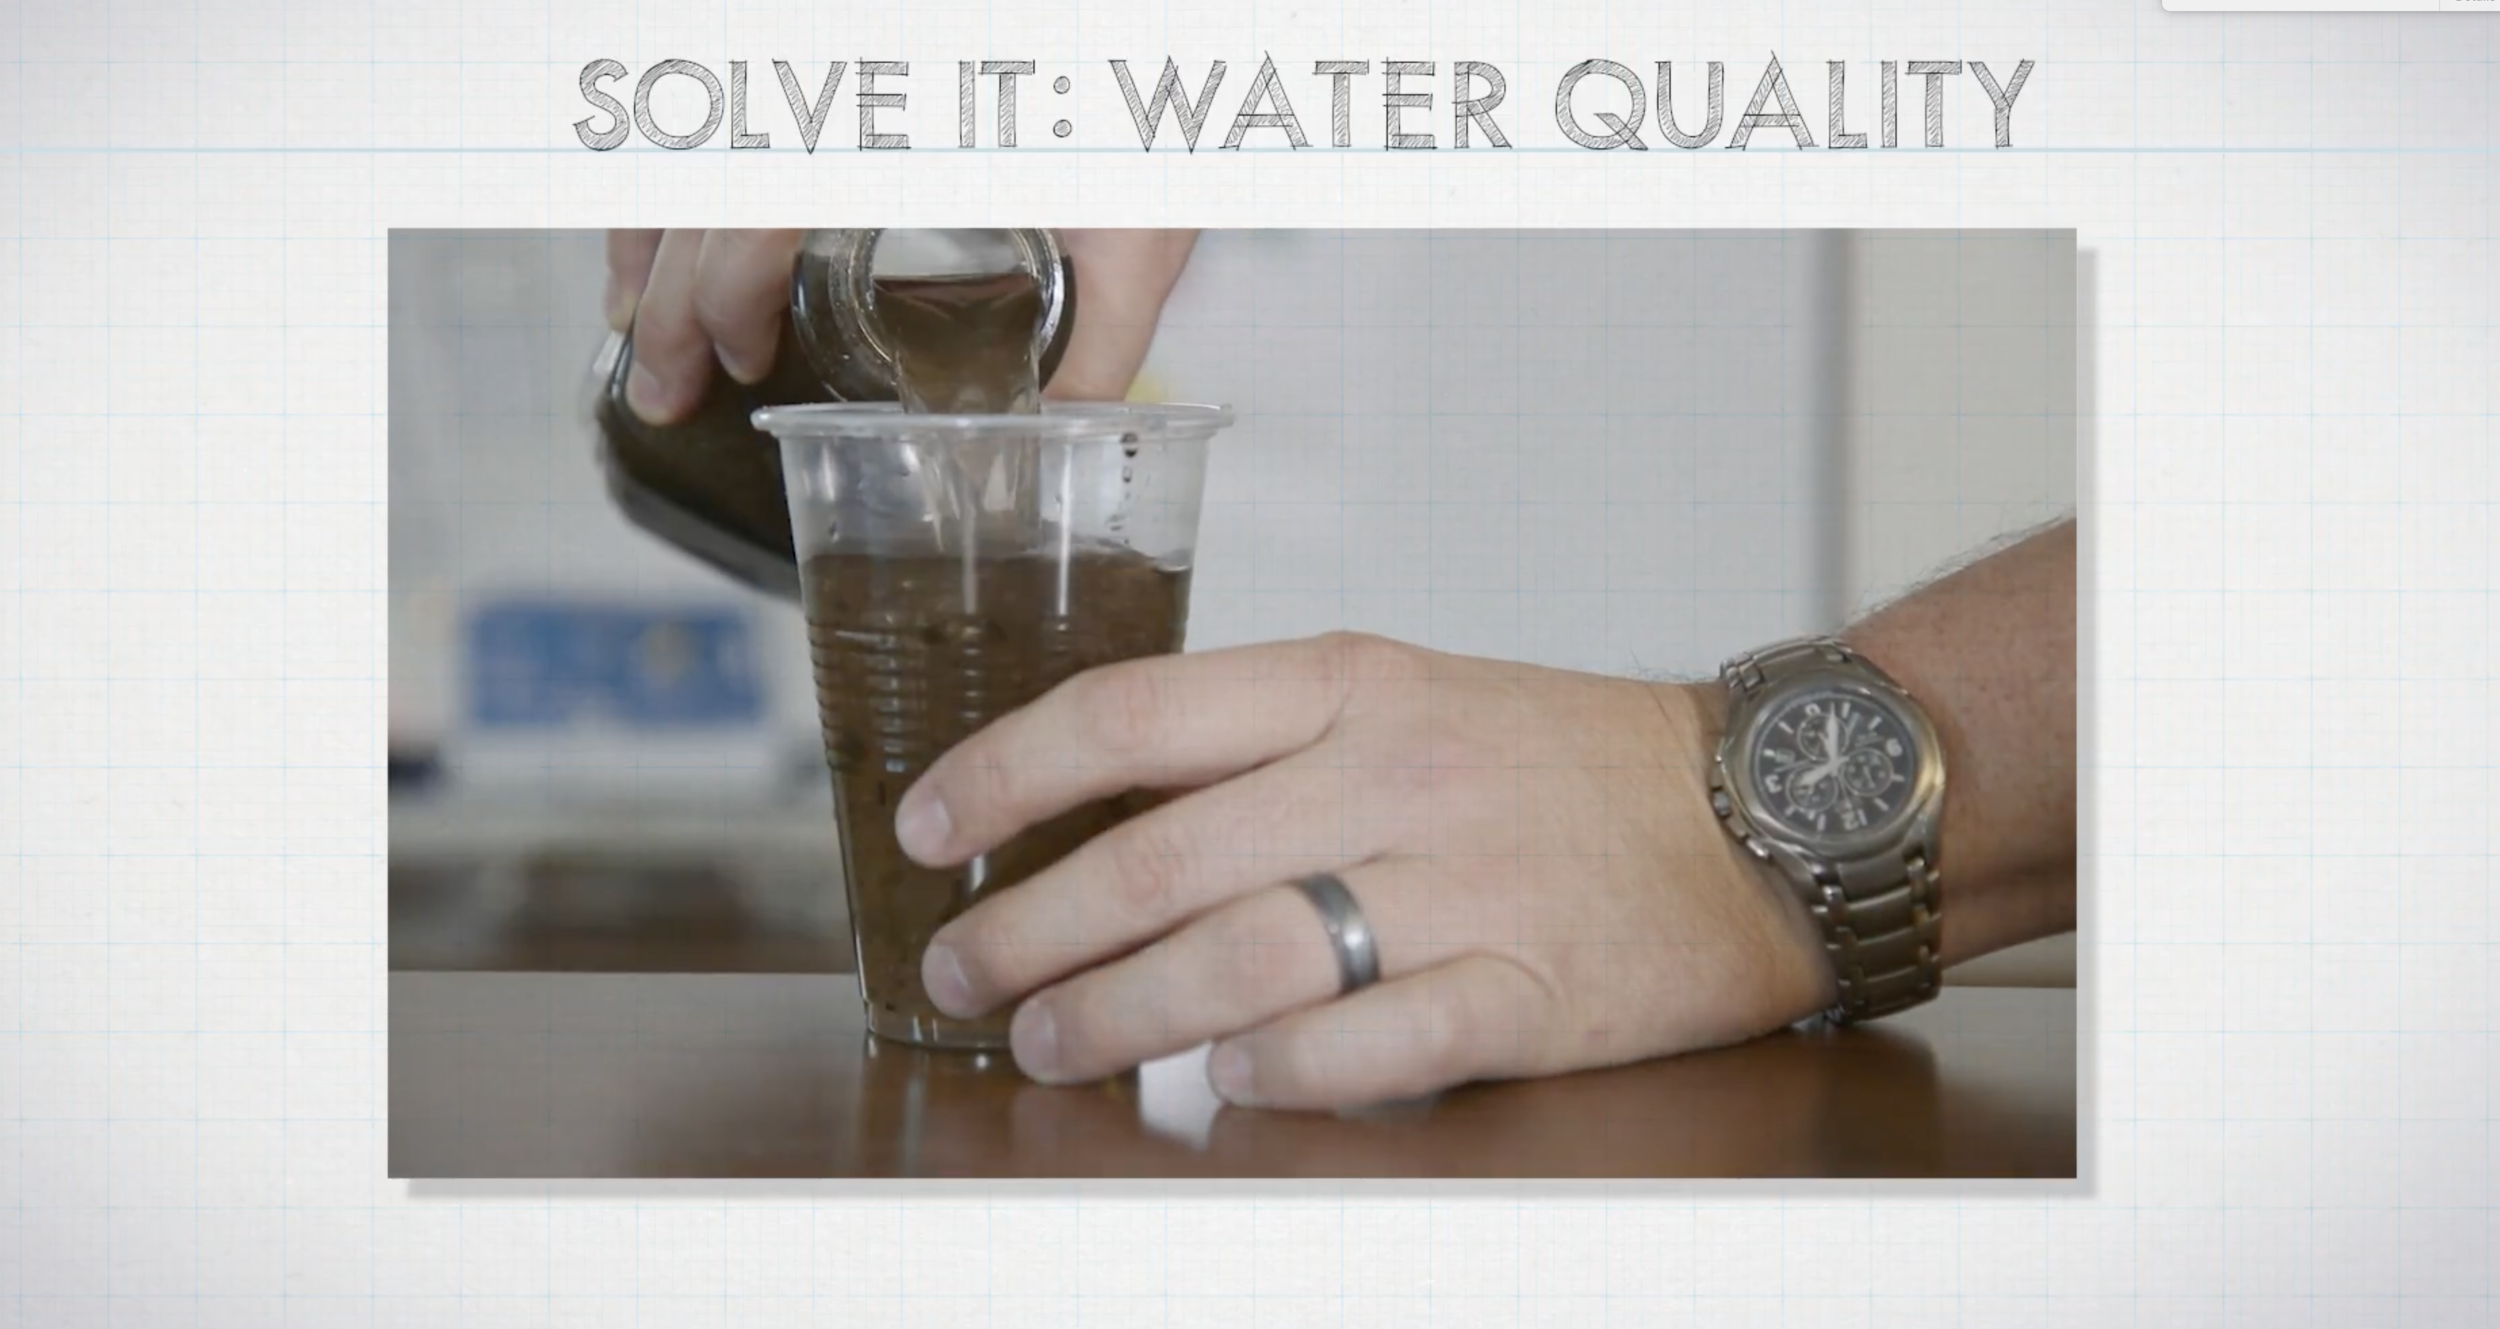 Solve It: Water Quality - Research tools and methods used to provide clean water and improve or design a better tool or method.